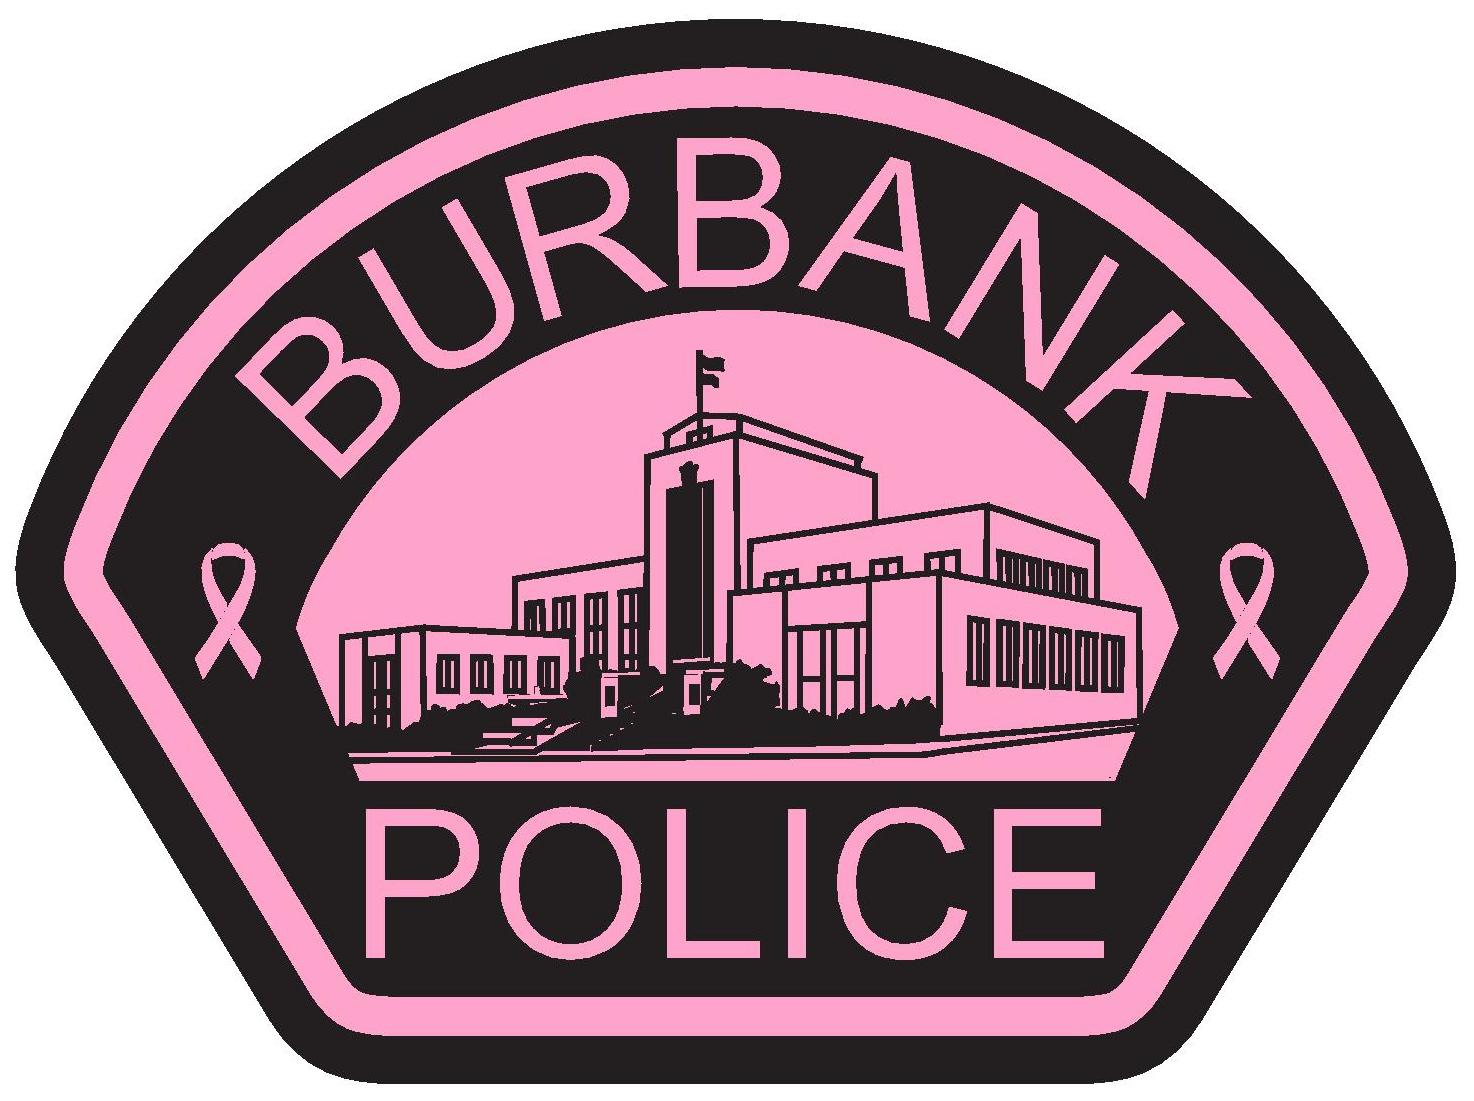 Burbank_Police_Pink-Patch-page-001.jpg